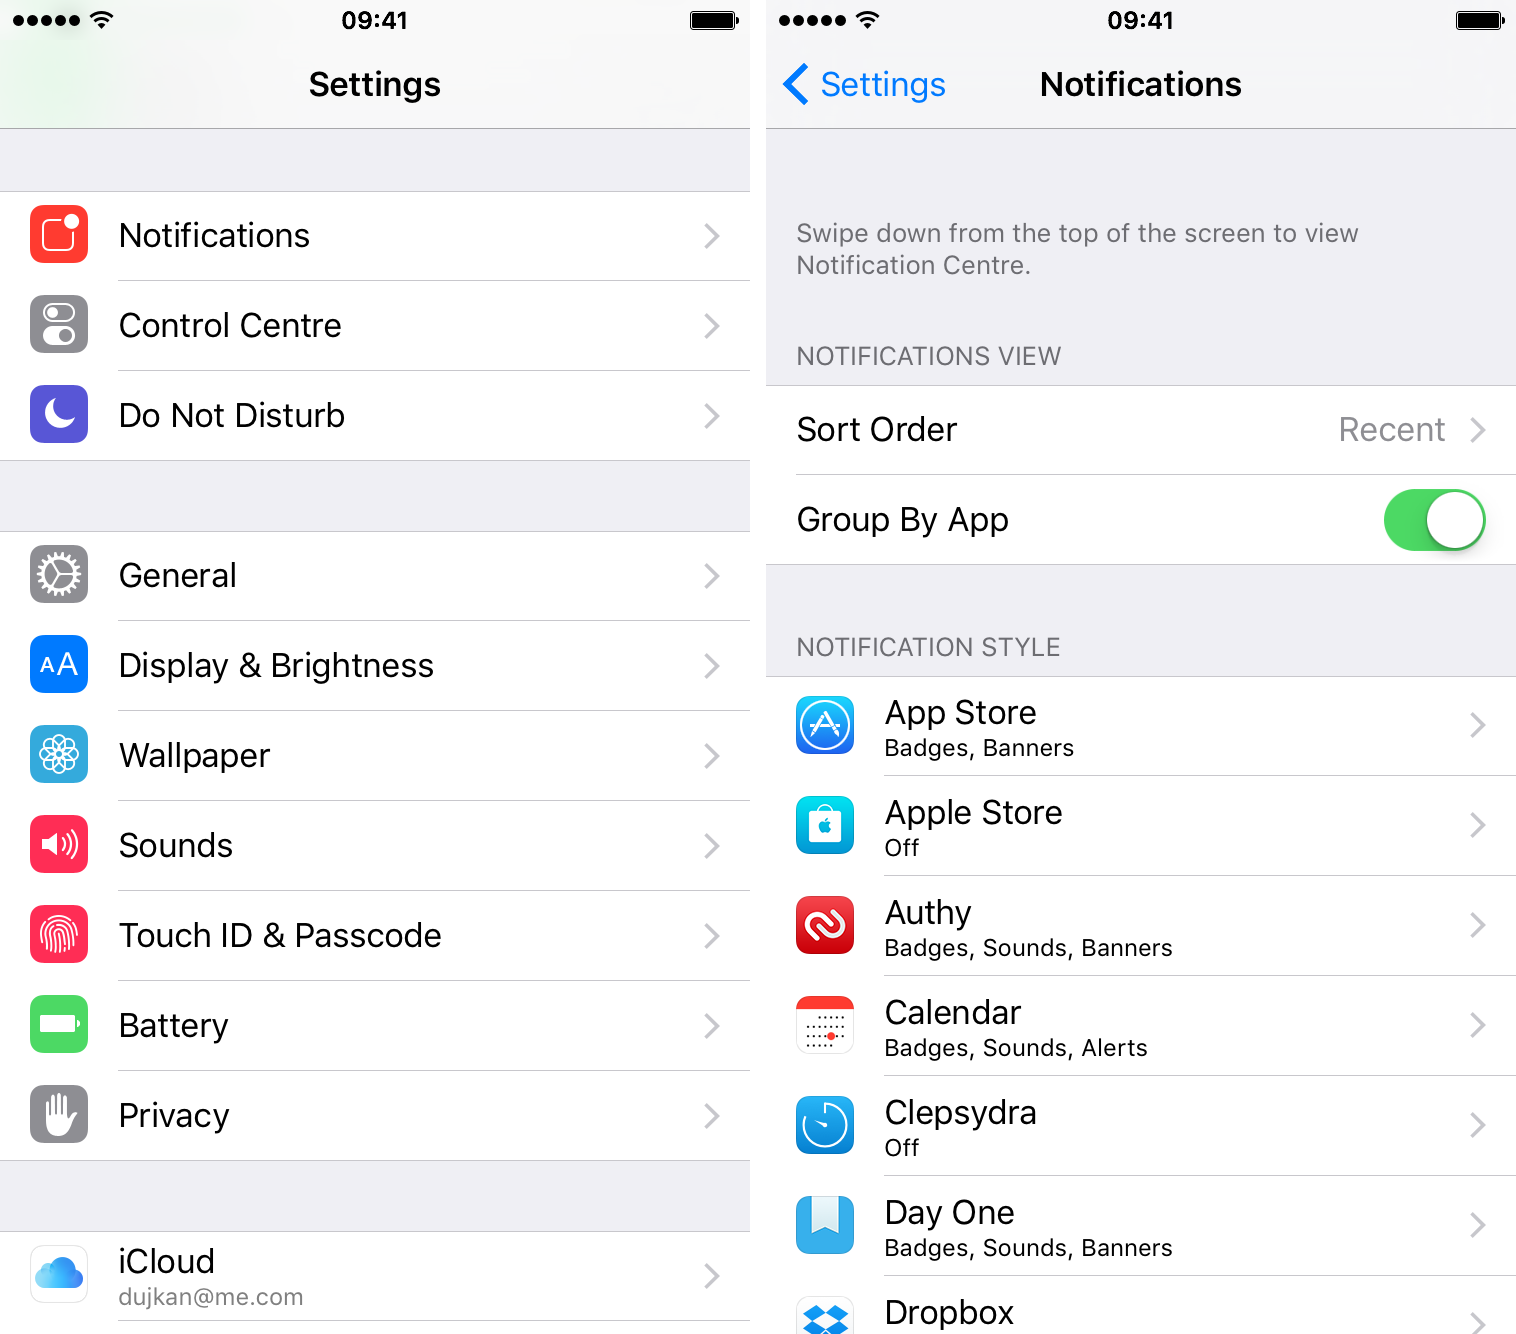 iOS 9 Settings Notifications Group by App iPhone screenshot 001